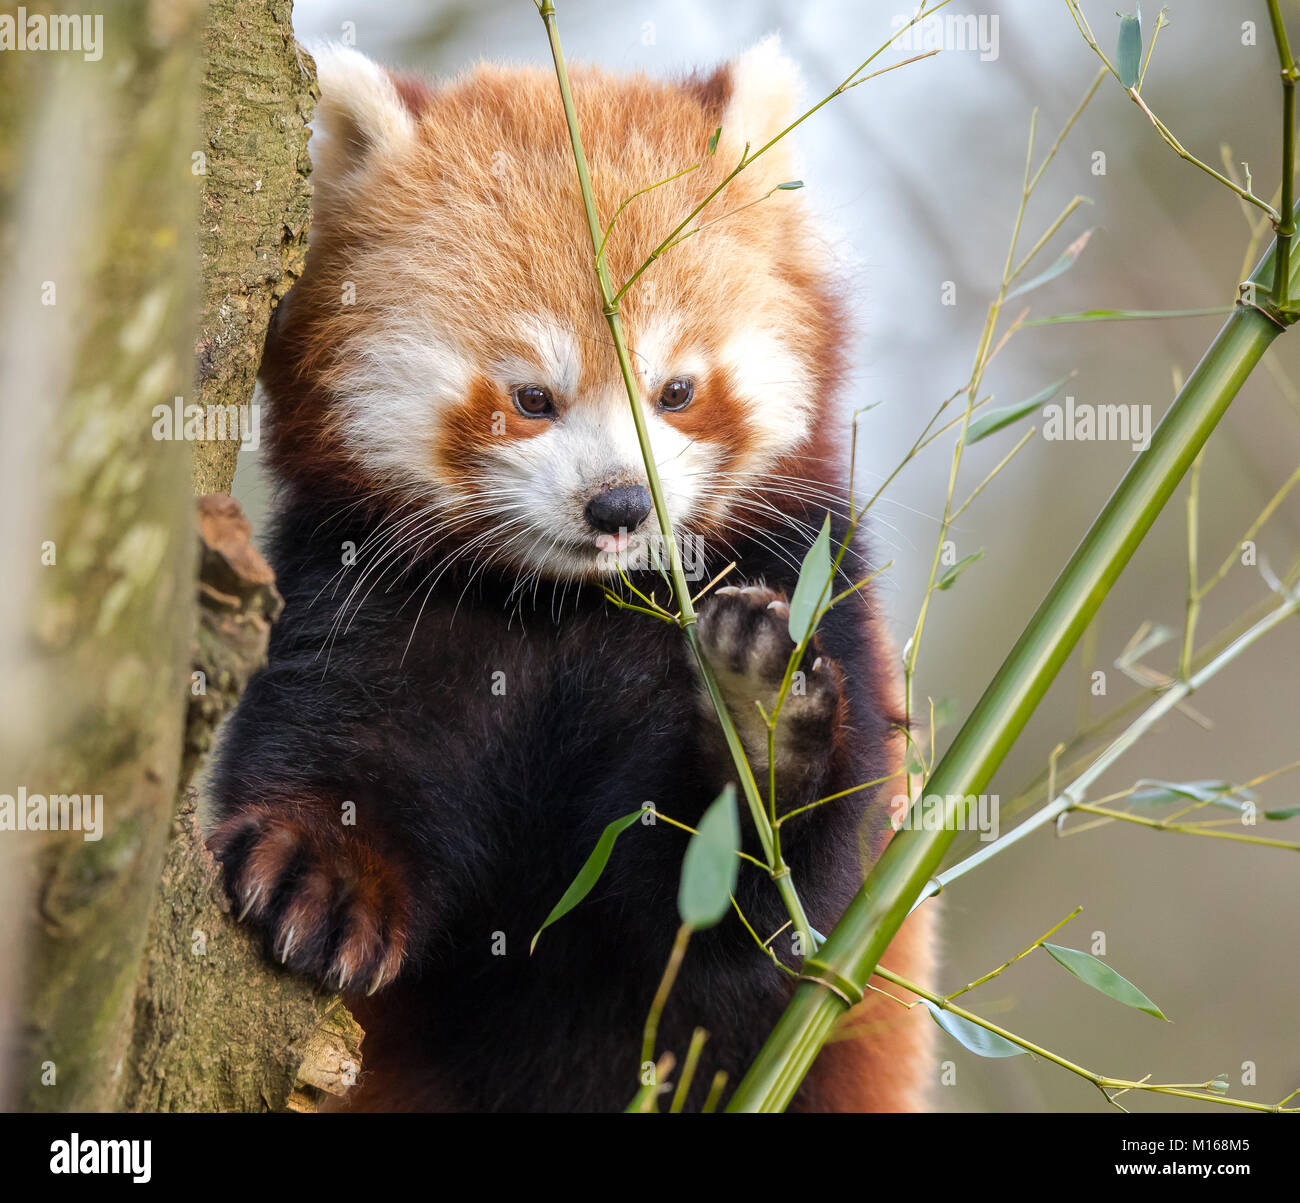 Close up of cute young red panda (Ailurus fulgens) perched high in tree holding on with a big furry paw. He stares - Stock Image